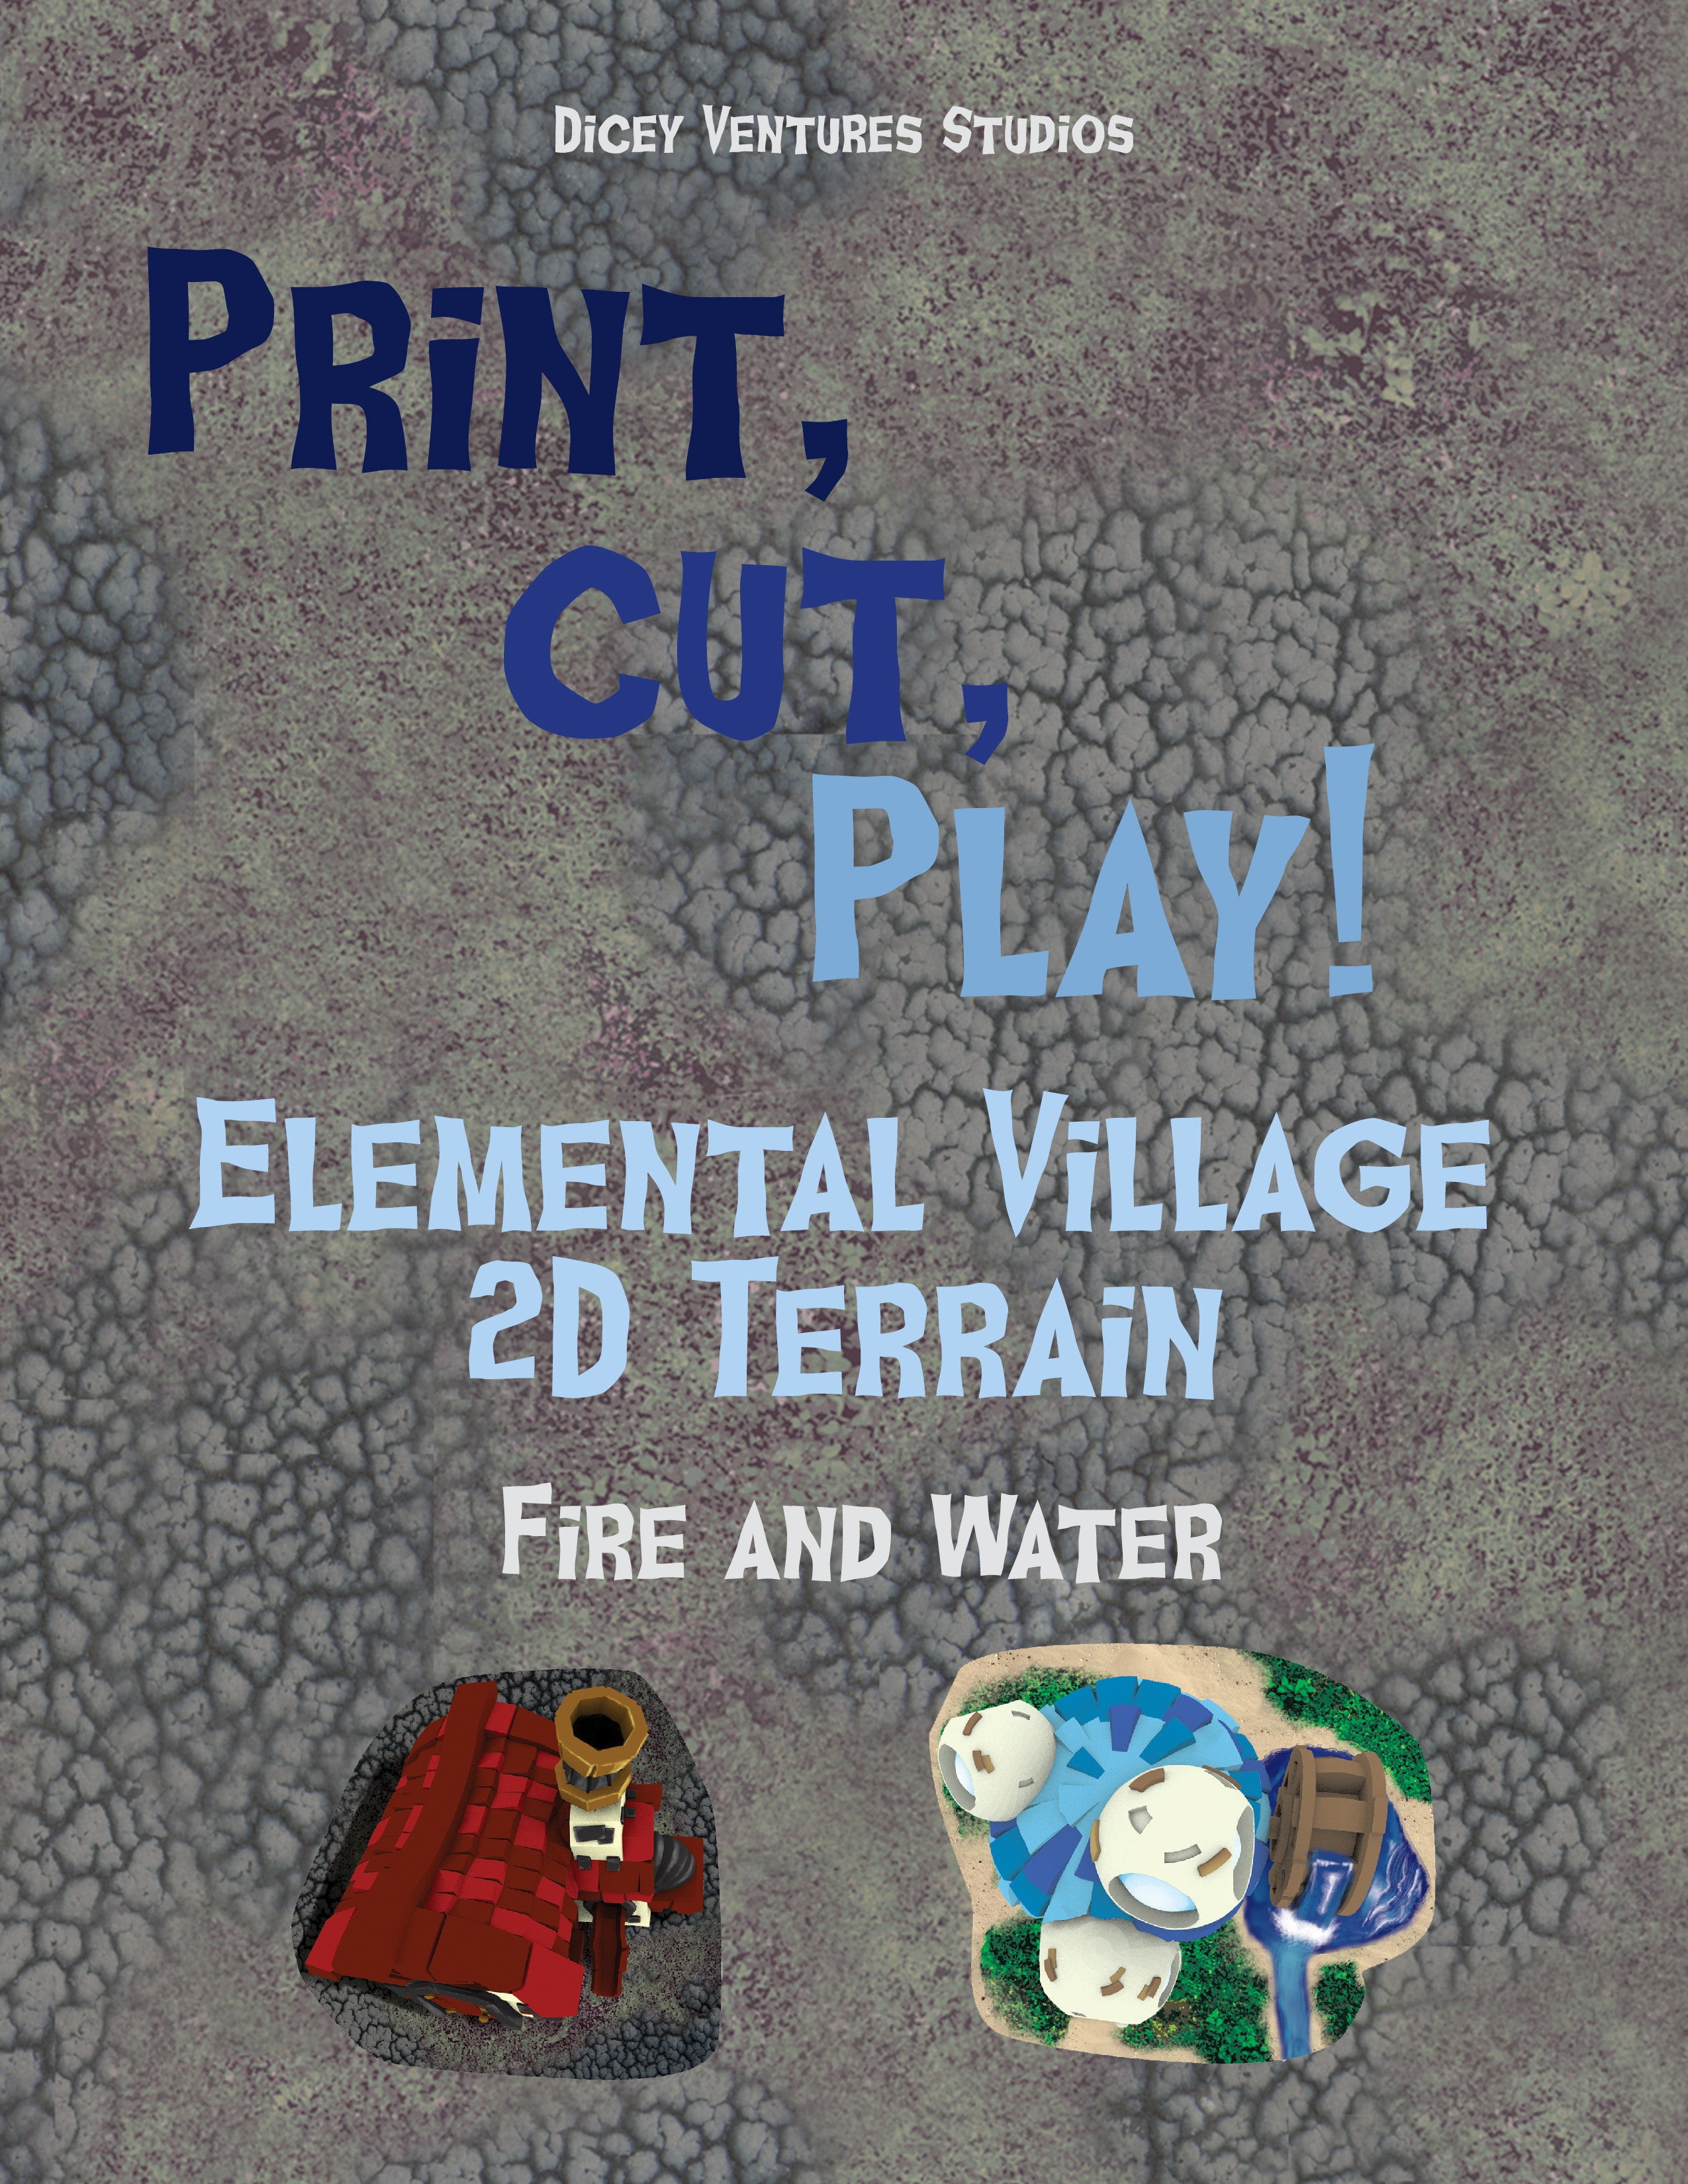 photo relating to 2d Printable Terrain titled Elemental Village: Print and Enjoy 2D Terrain - Fireplace/H2o